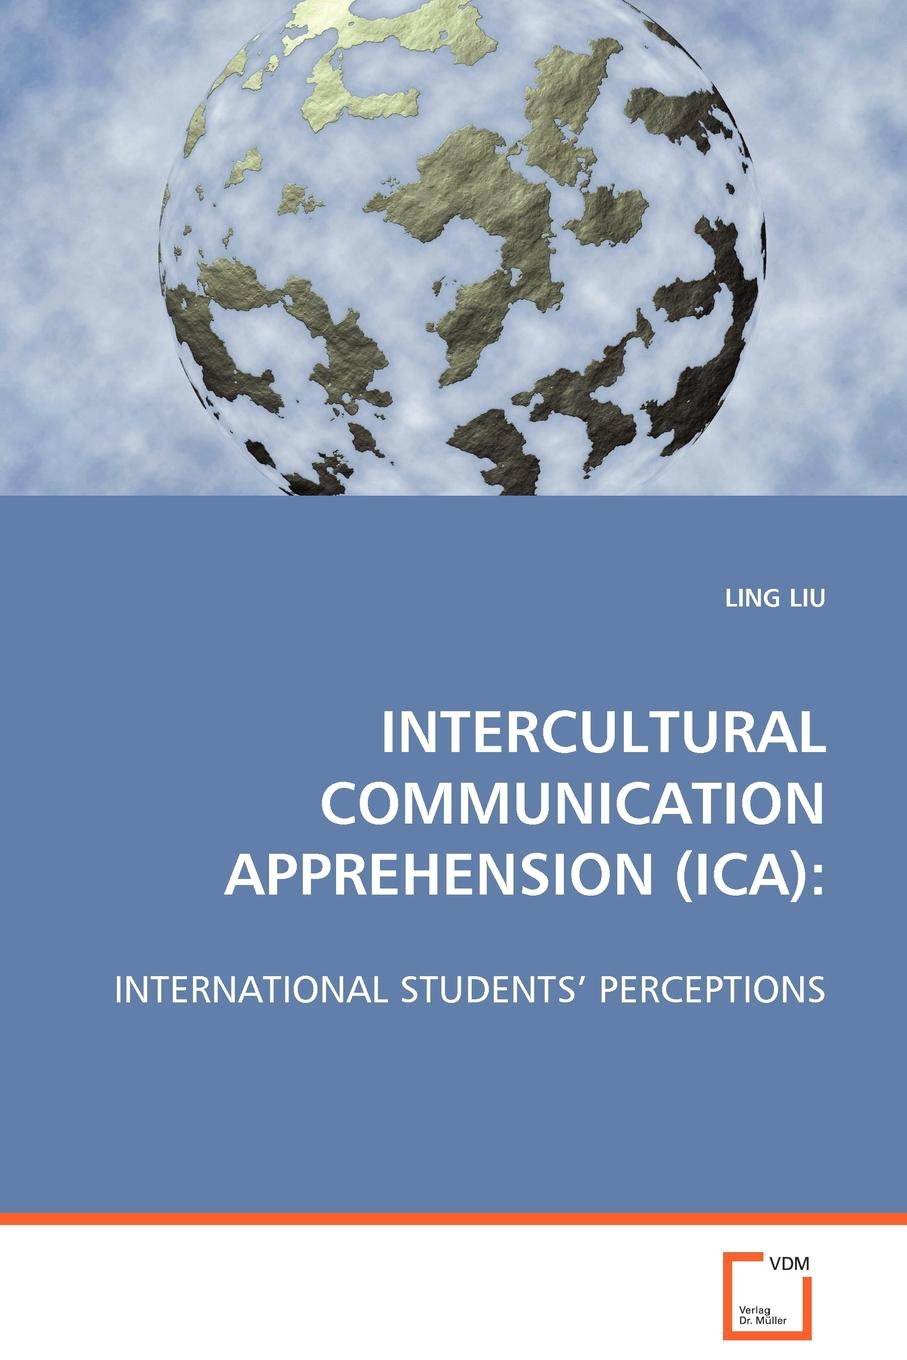 LING LIU INTERCULTURAL COMMUNICATION APPREHENSION (ICA) detection and classification of masses in mammograms using ica